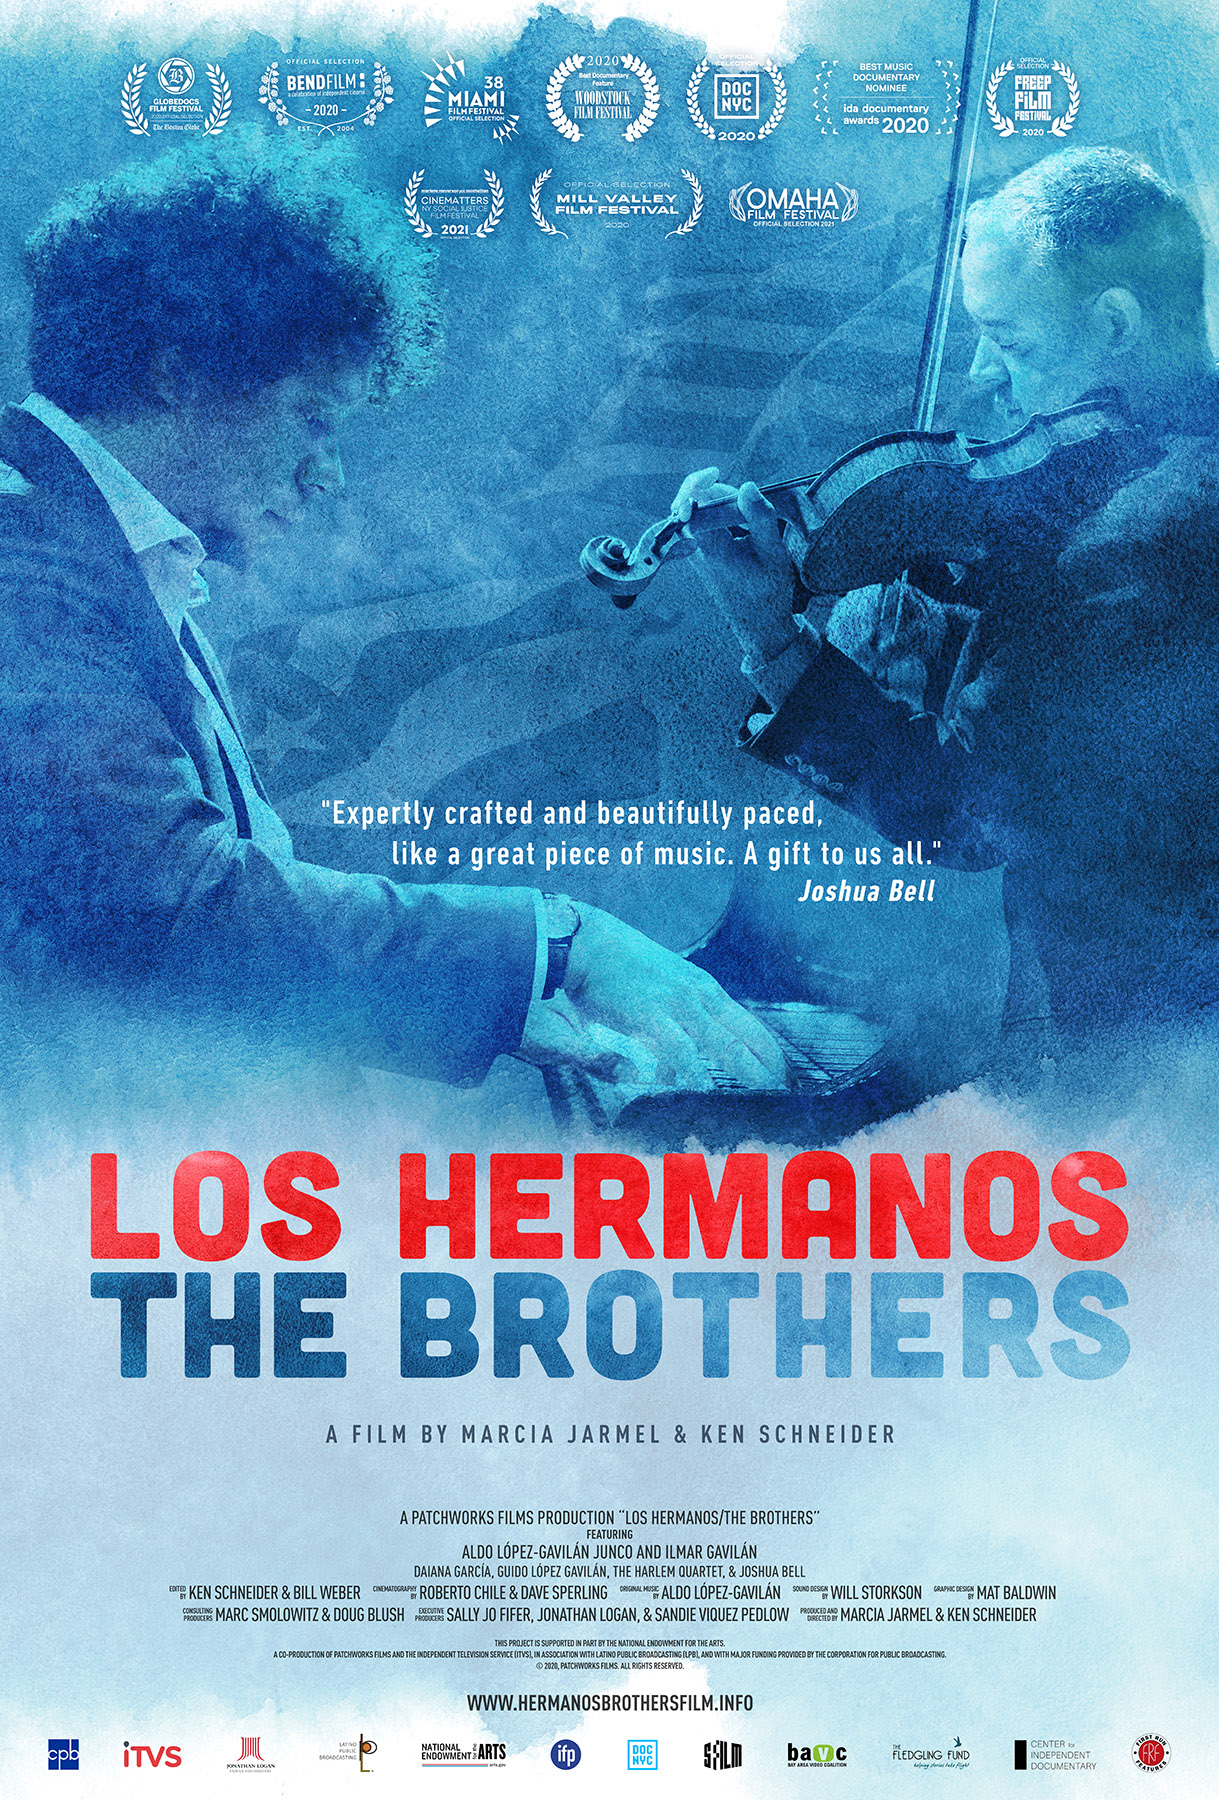 LosHermanos-TheBrothers_Poster